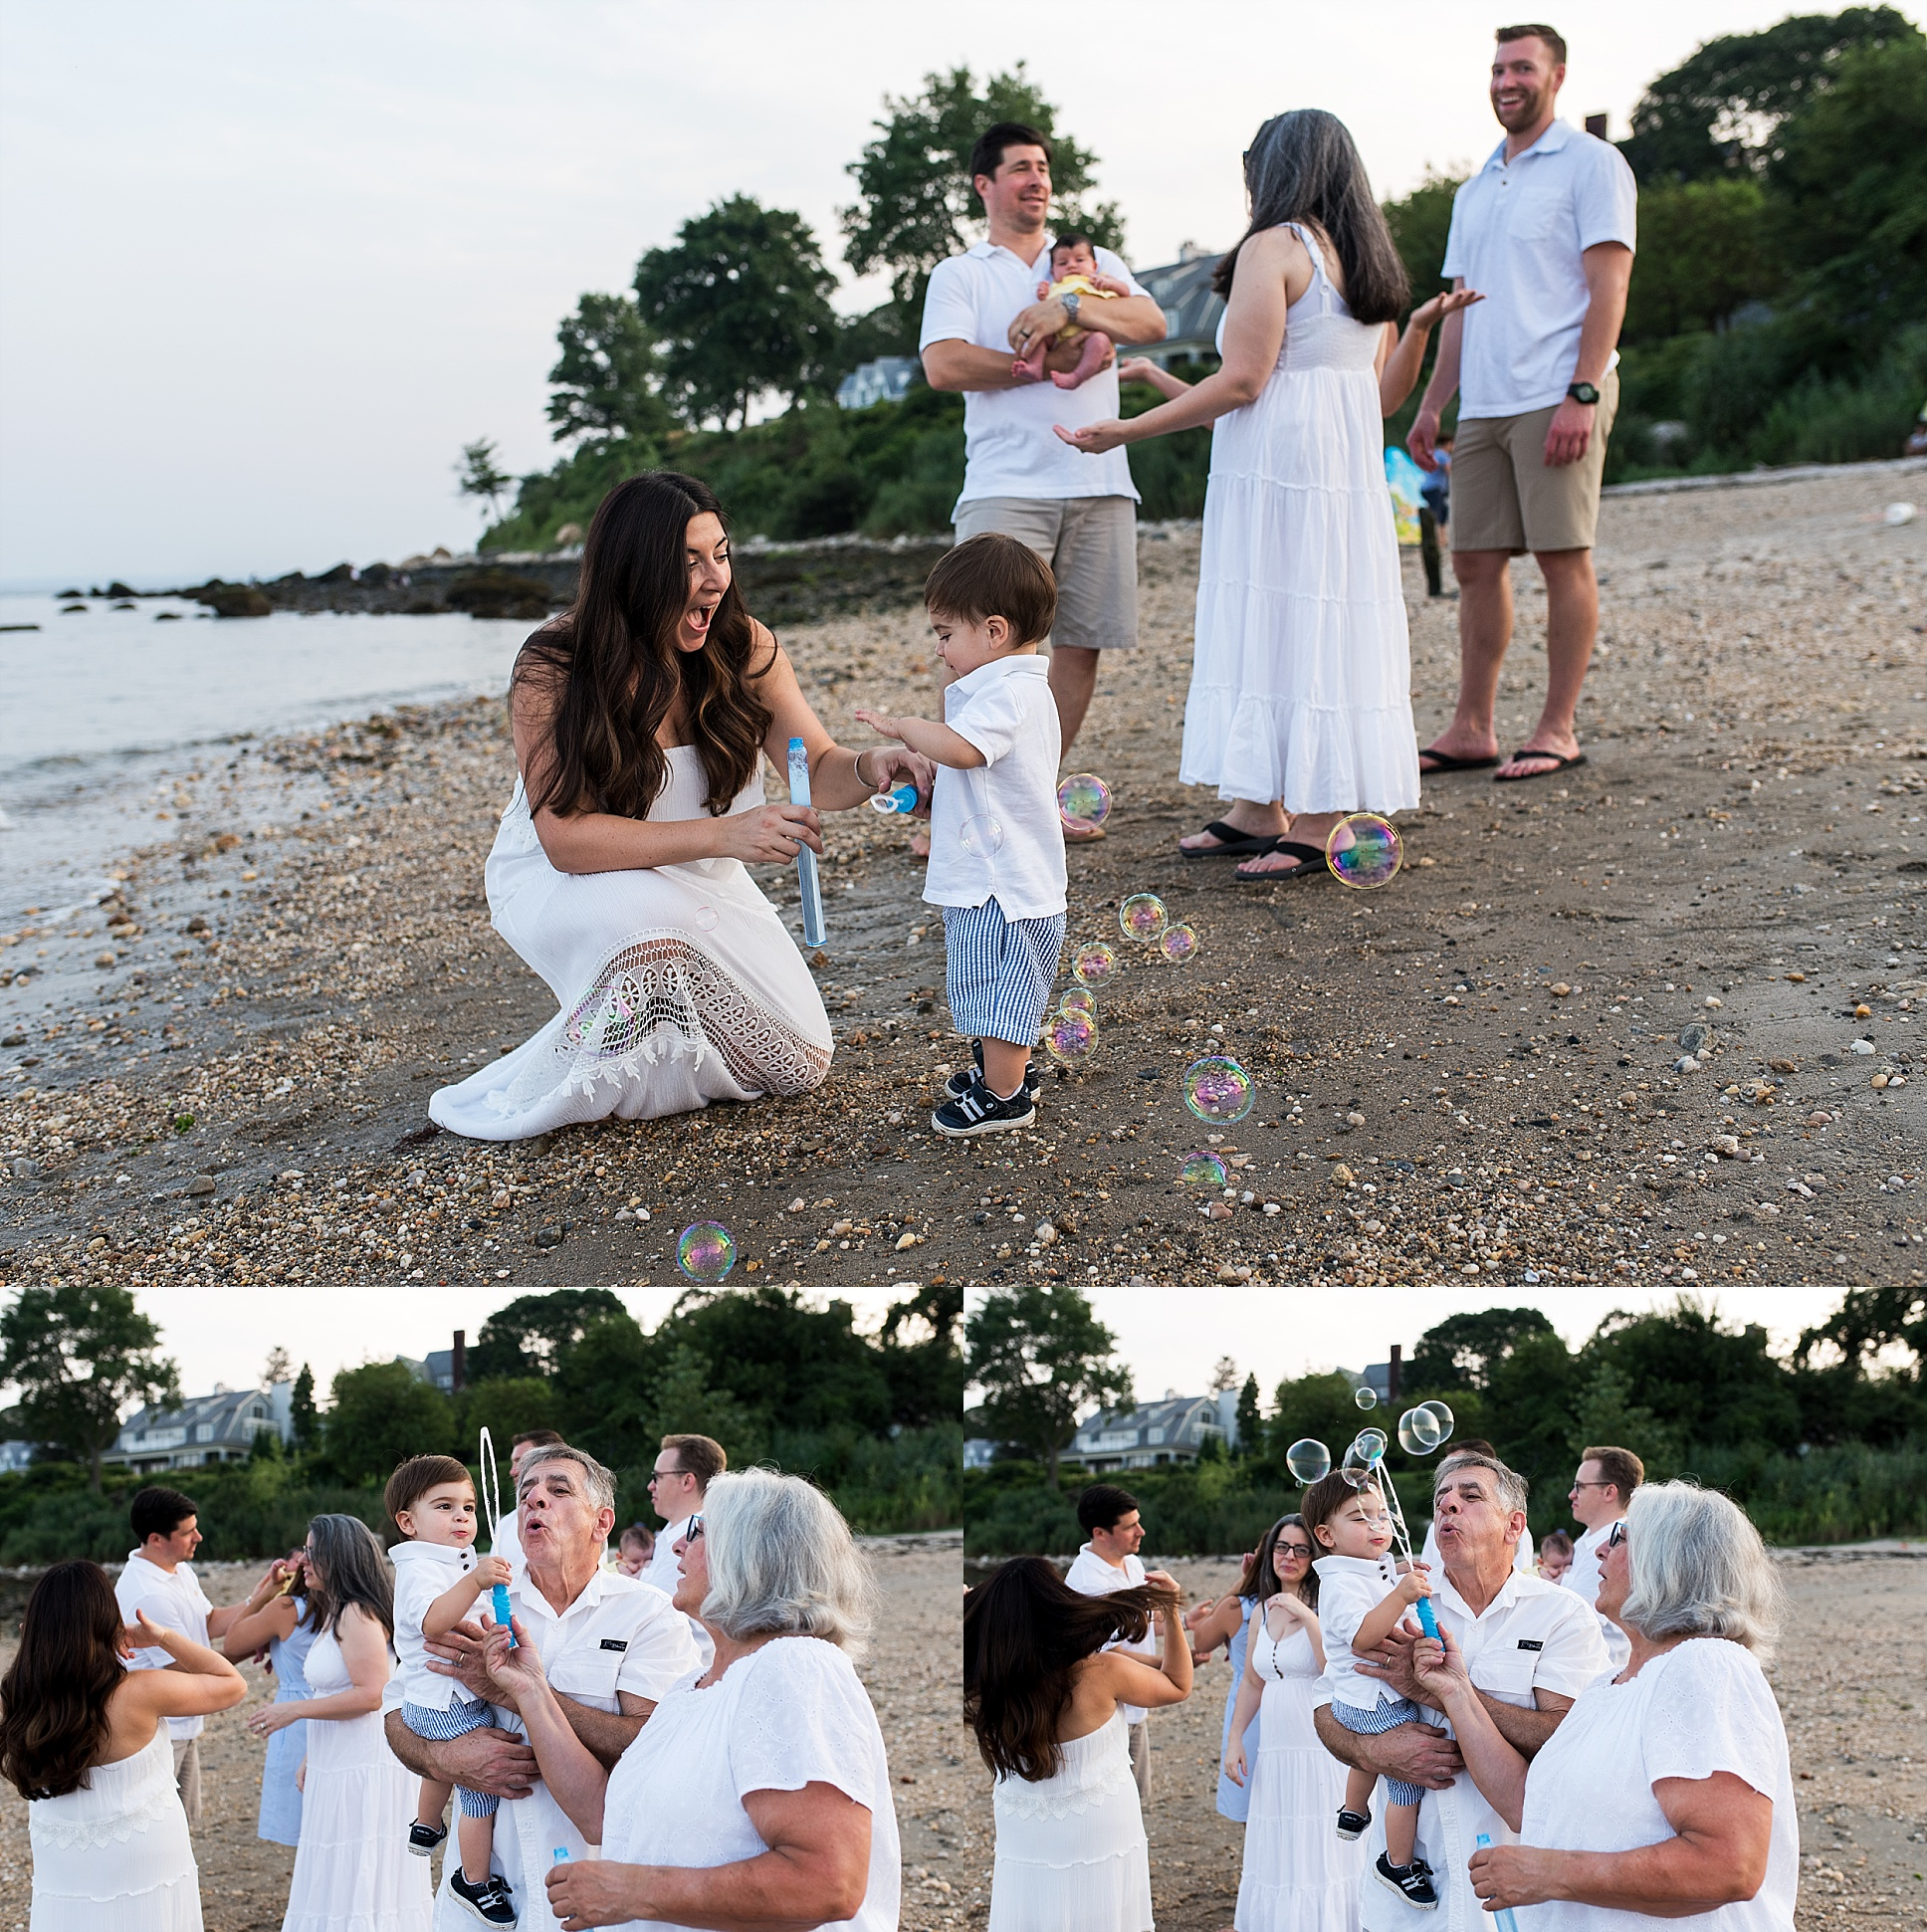 extended family photography session on the beach in ct